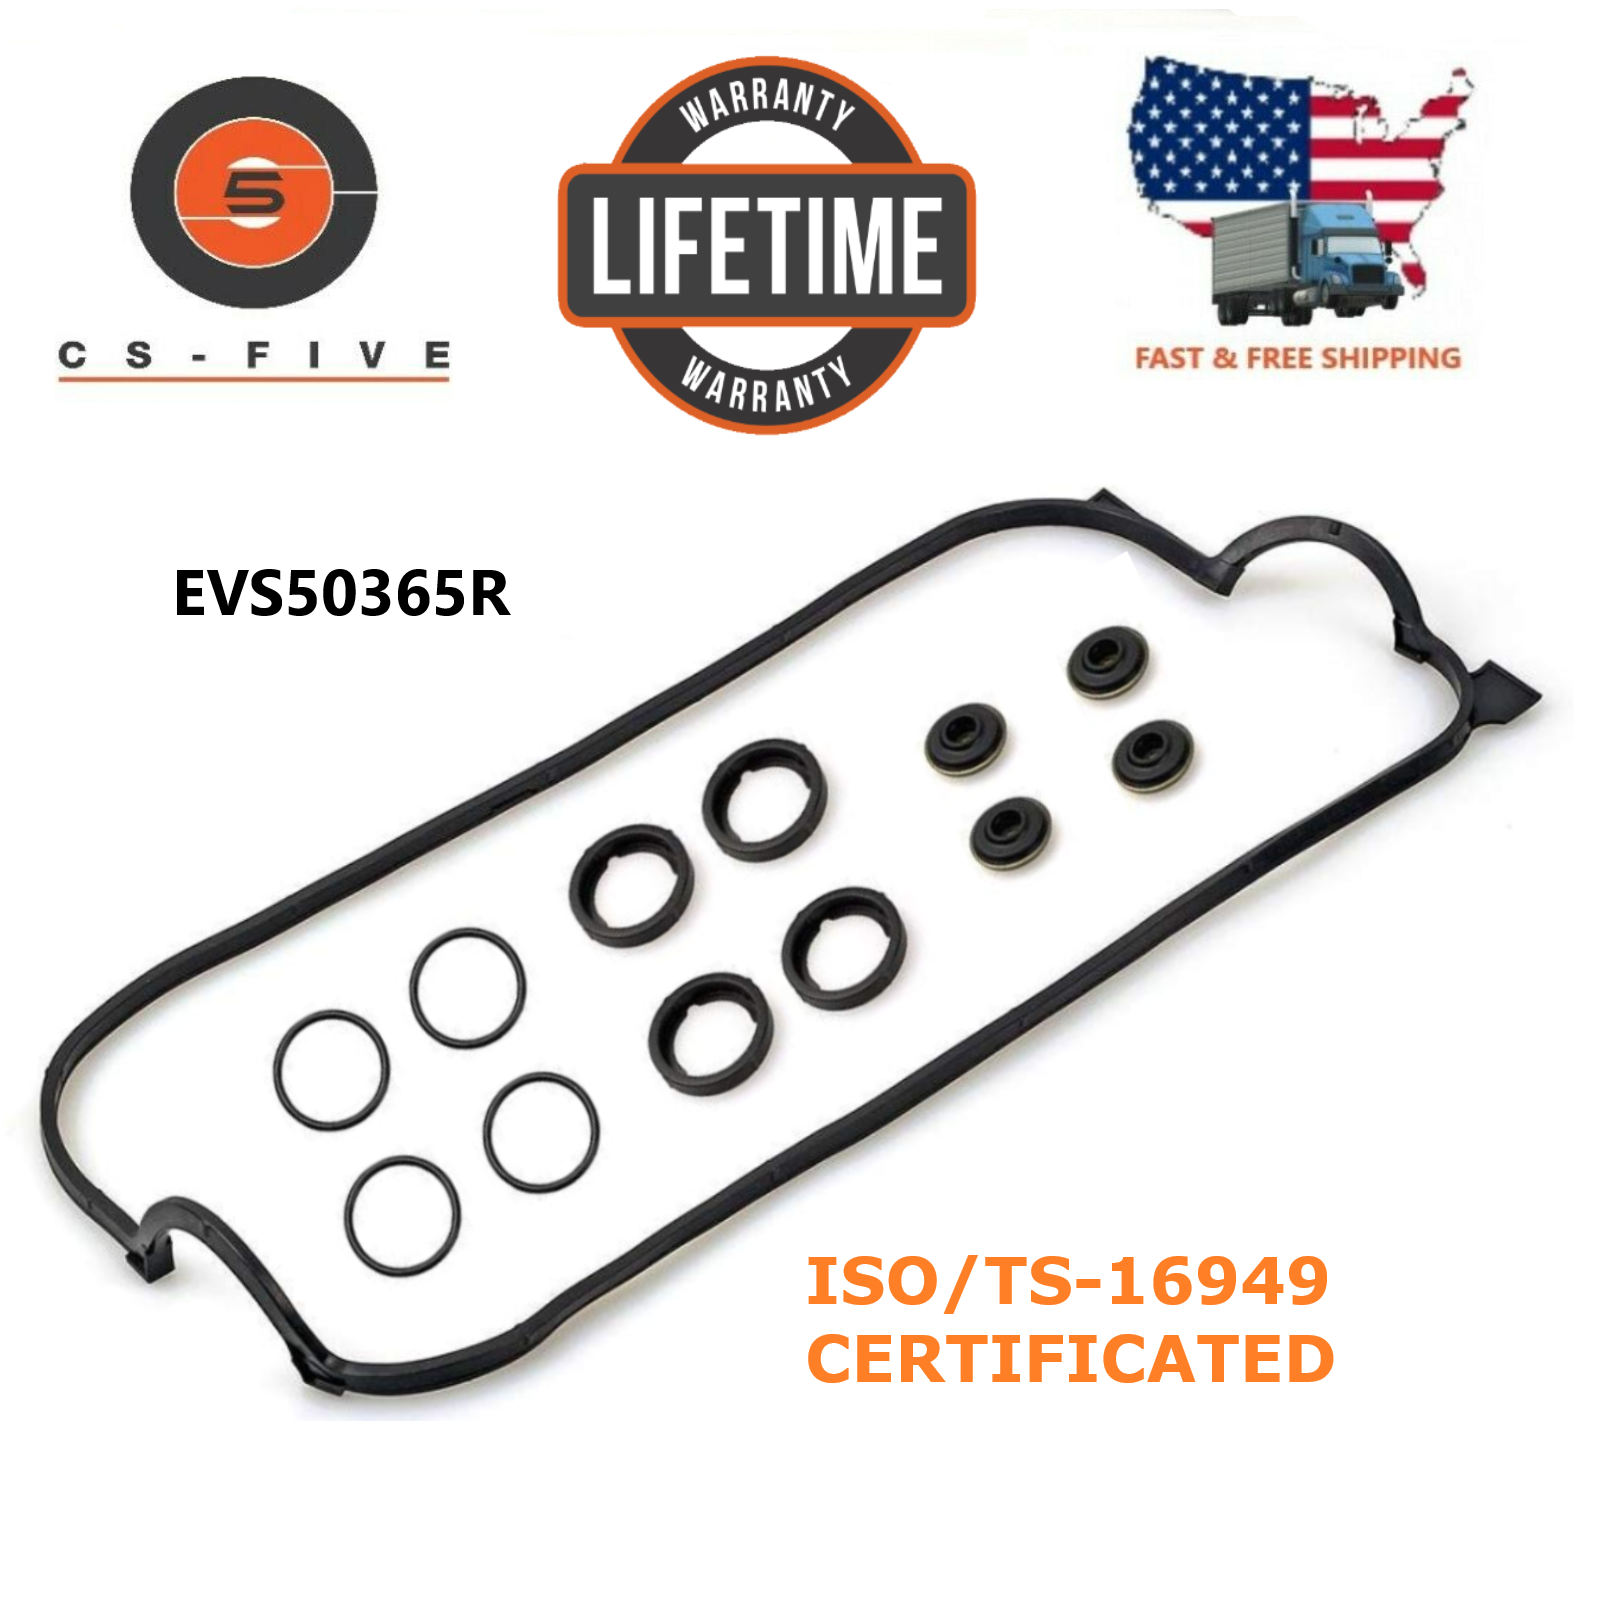 LIFETIME Warranty Valve Cover Gasket Fits 1990 - 1998 HONDA ACCORD 2.2L F22B2 VS50365R VS50365R